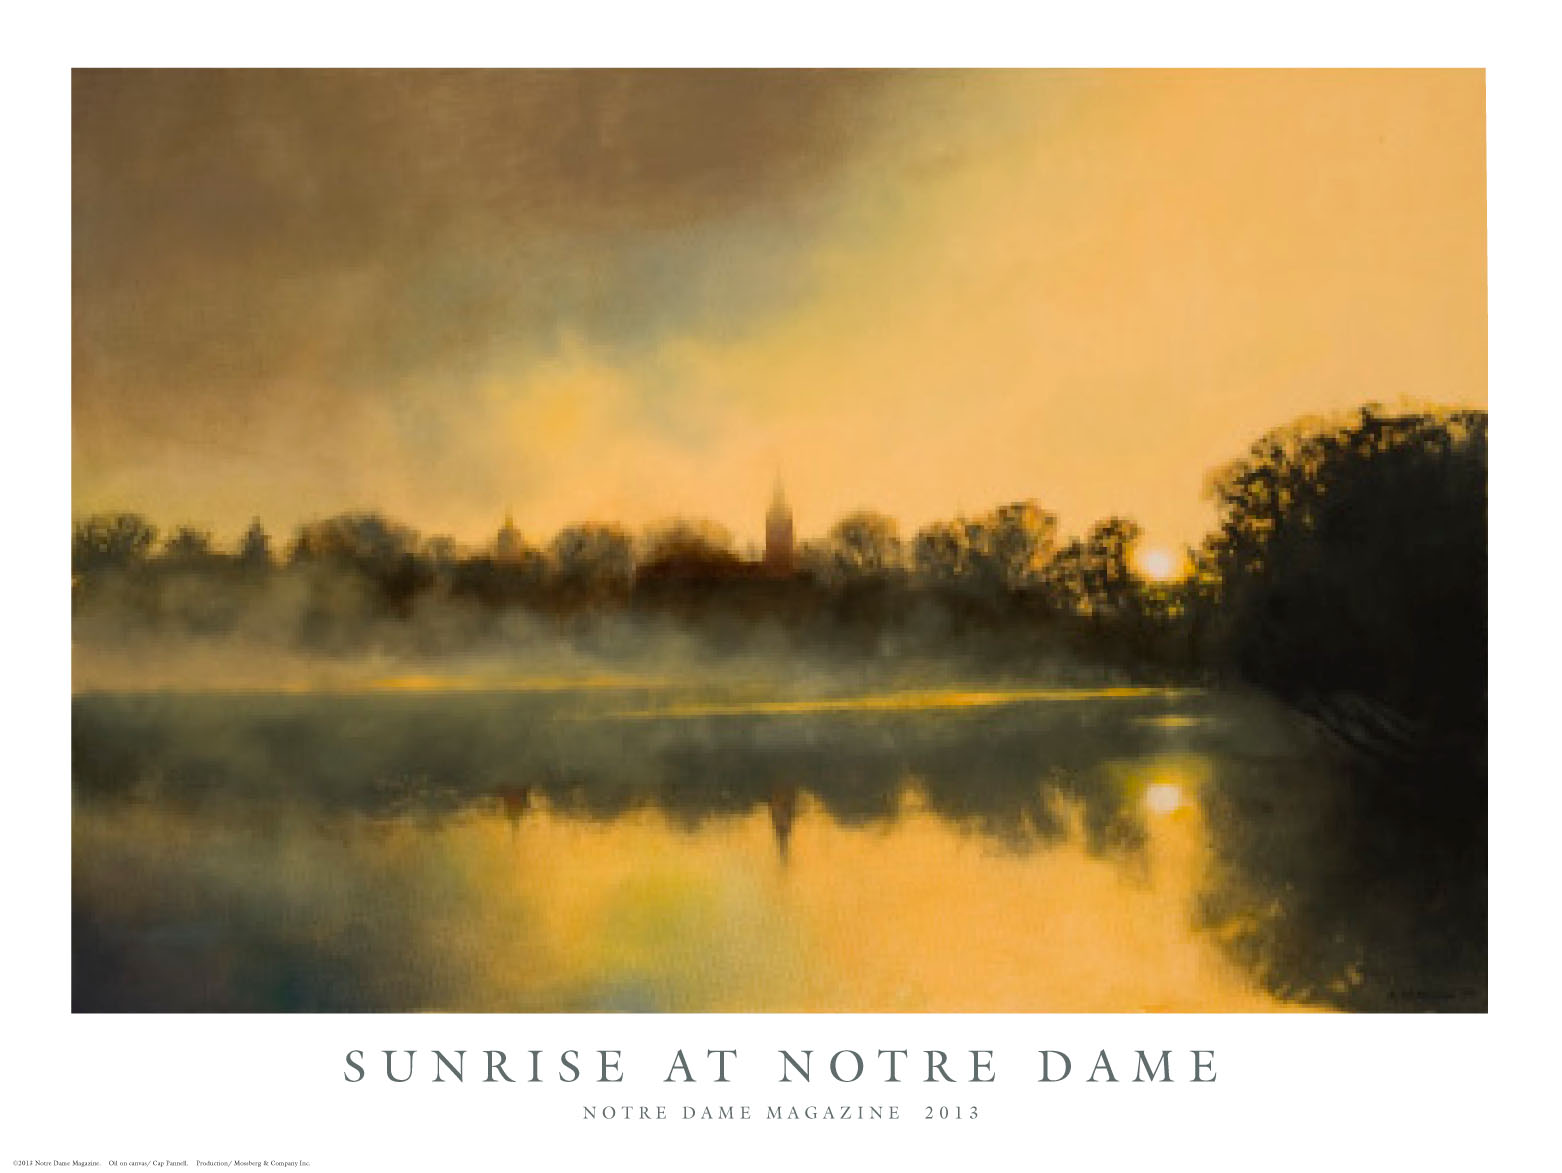 Sunrise at Notre Dame, artwork by Cap Pannell